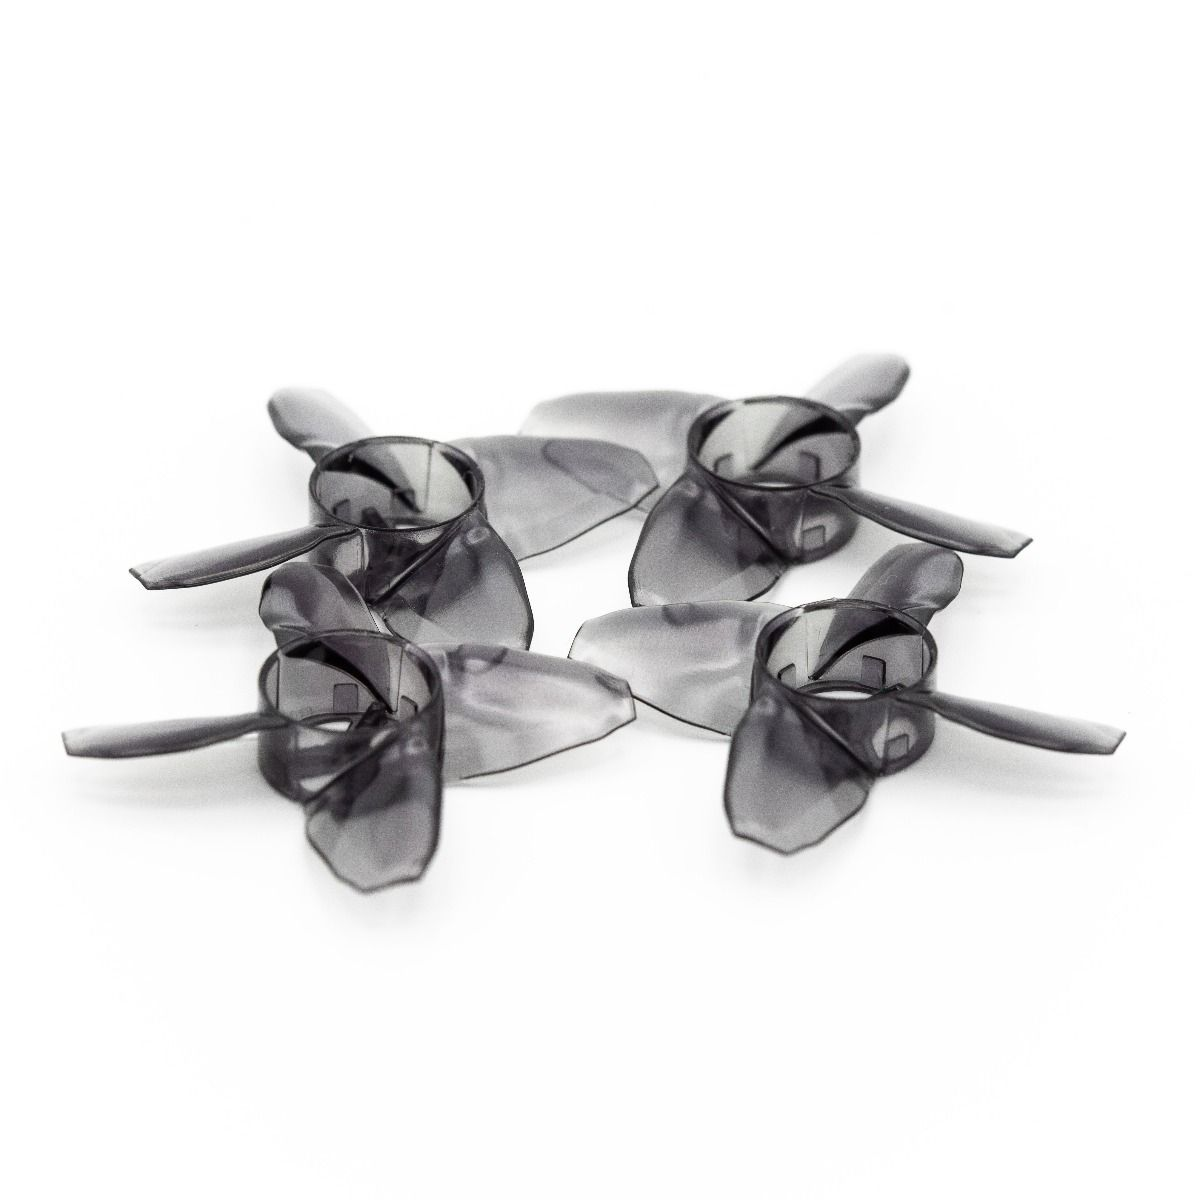 Emax Avan TH - 4-blade propeller - Turtlemode - 1 set (2cw + 2ccw)